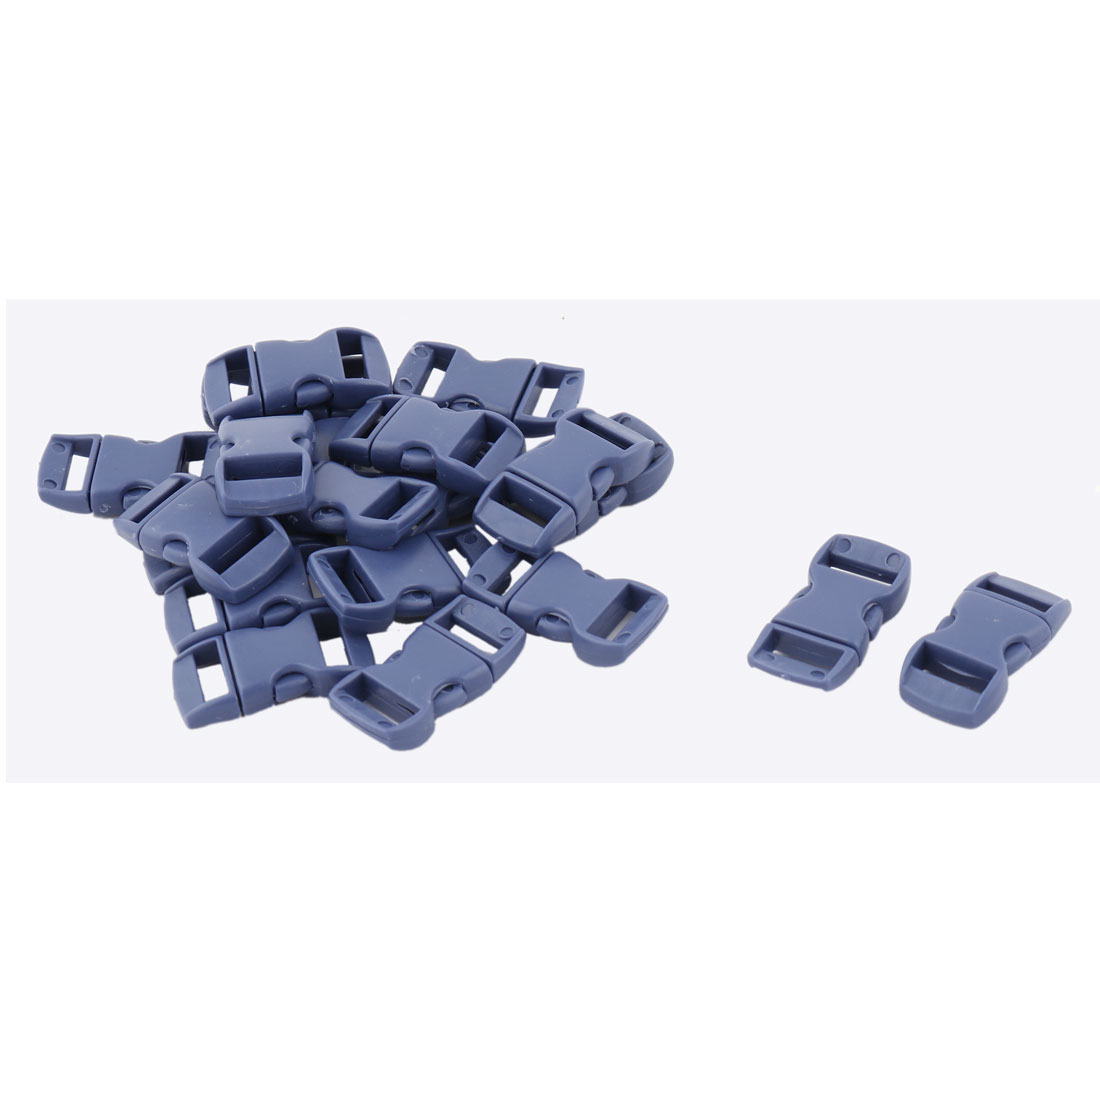 Bag Plastic Strap Webbing Belt Adjustive Connecting Quick Release Buckle Dark Blue 20 Pcs